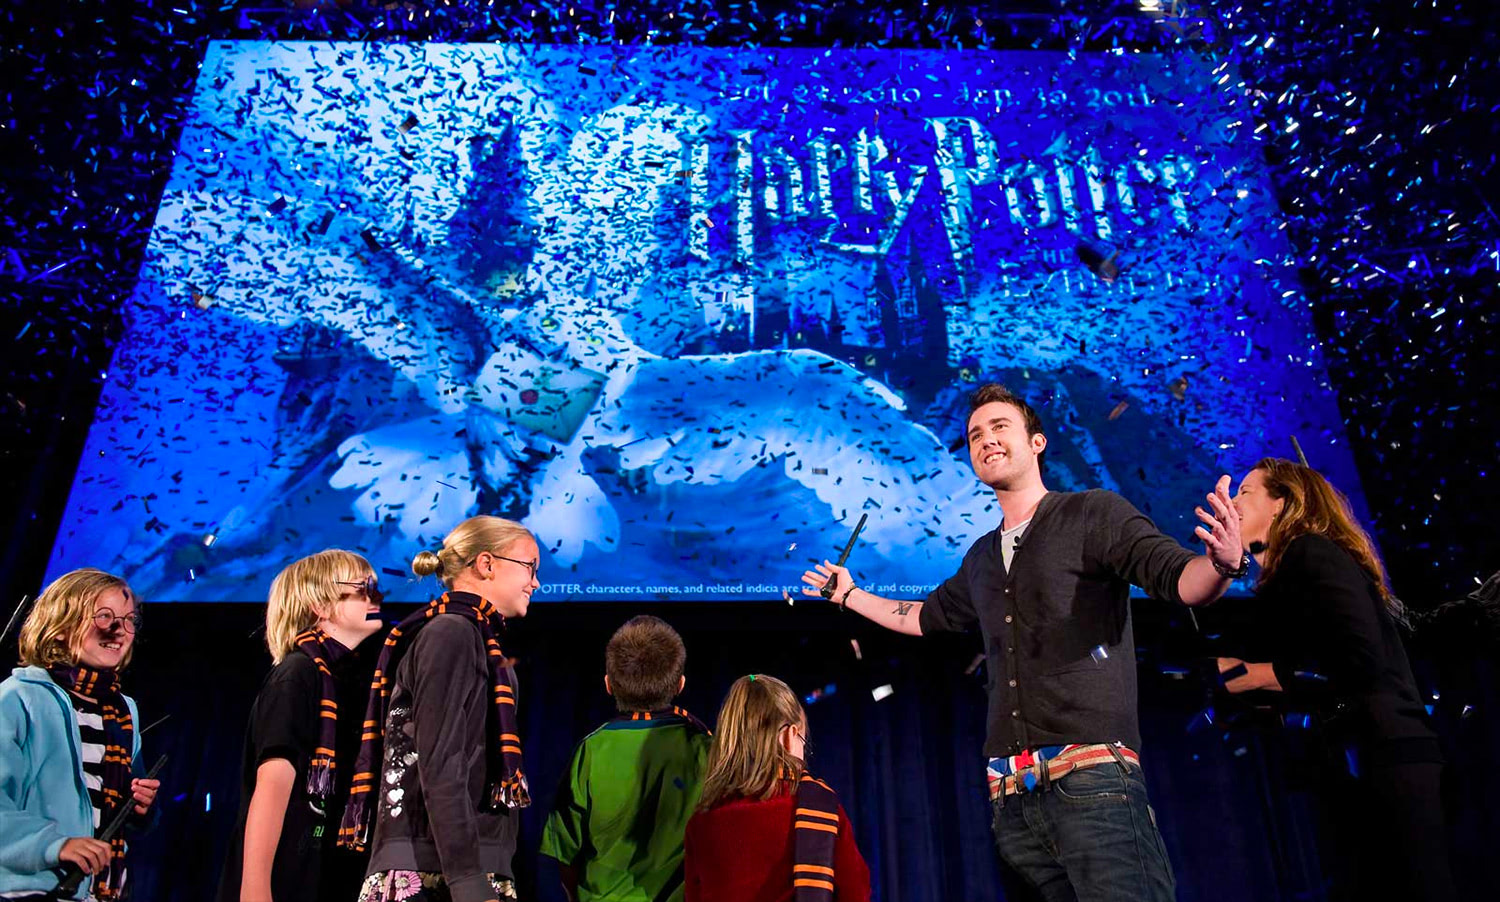 Matthew Lewis at the 'Harry Potter' exhibition announcement